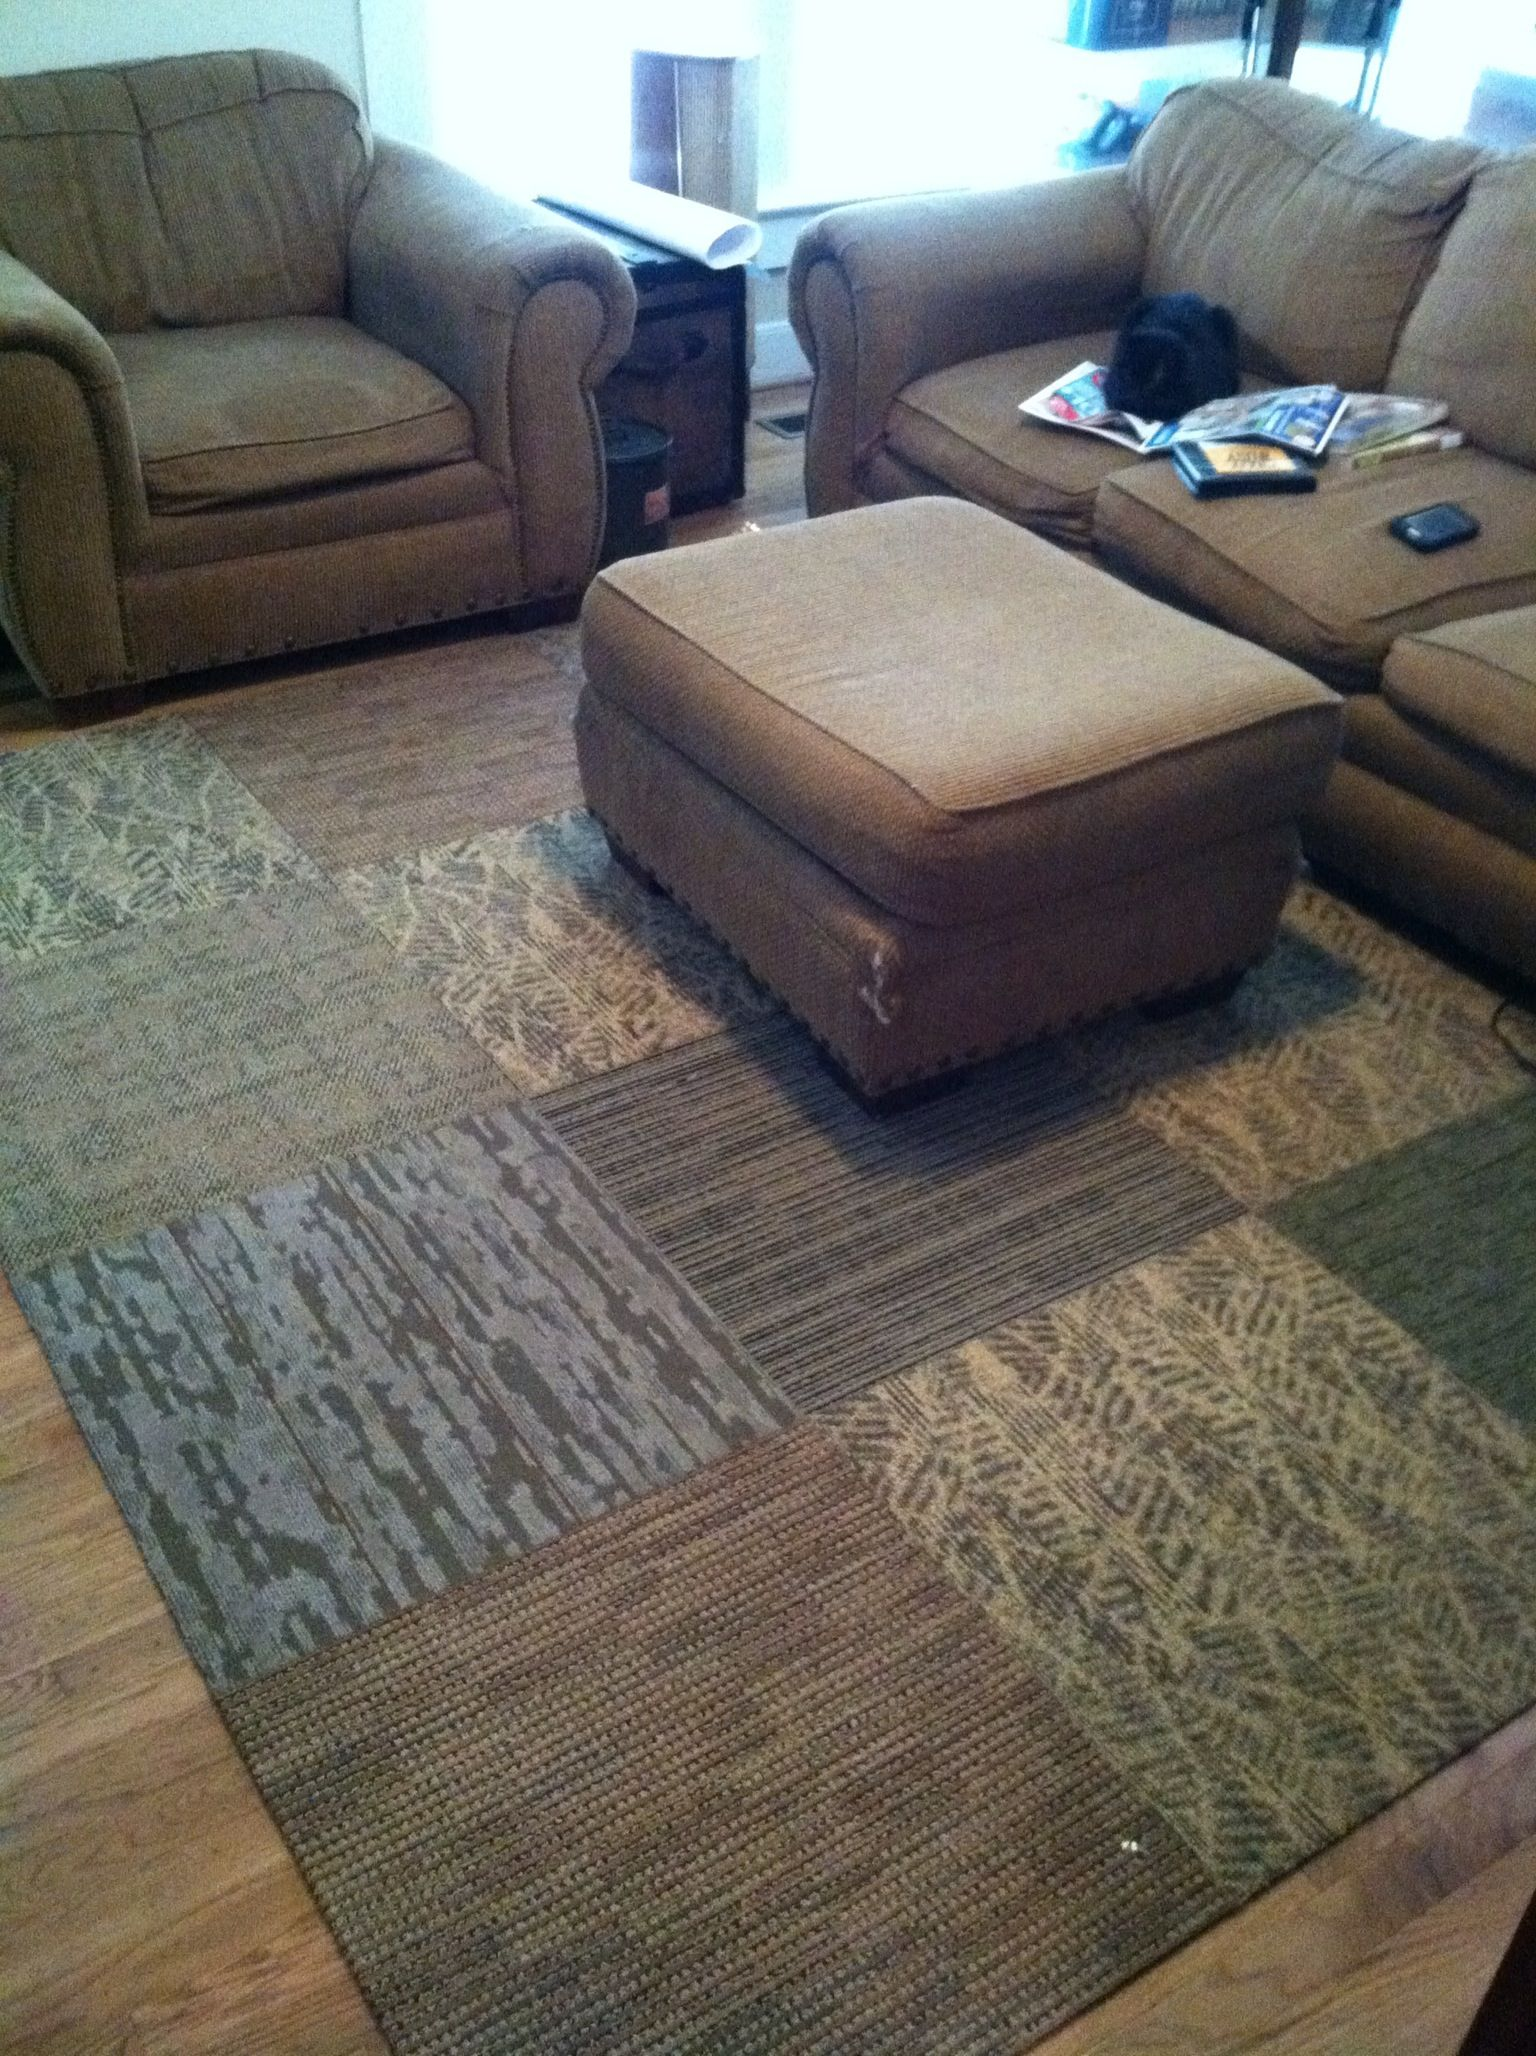 Inexpensive Area Rug 12 Industrial Carpet Tiles 2 Ea Connected